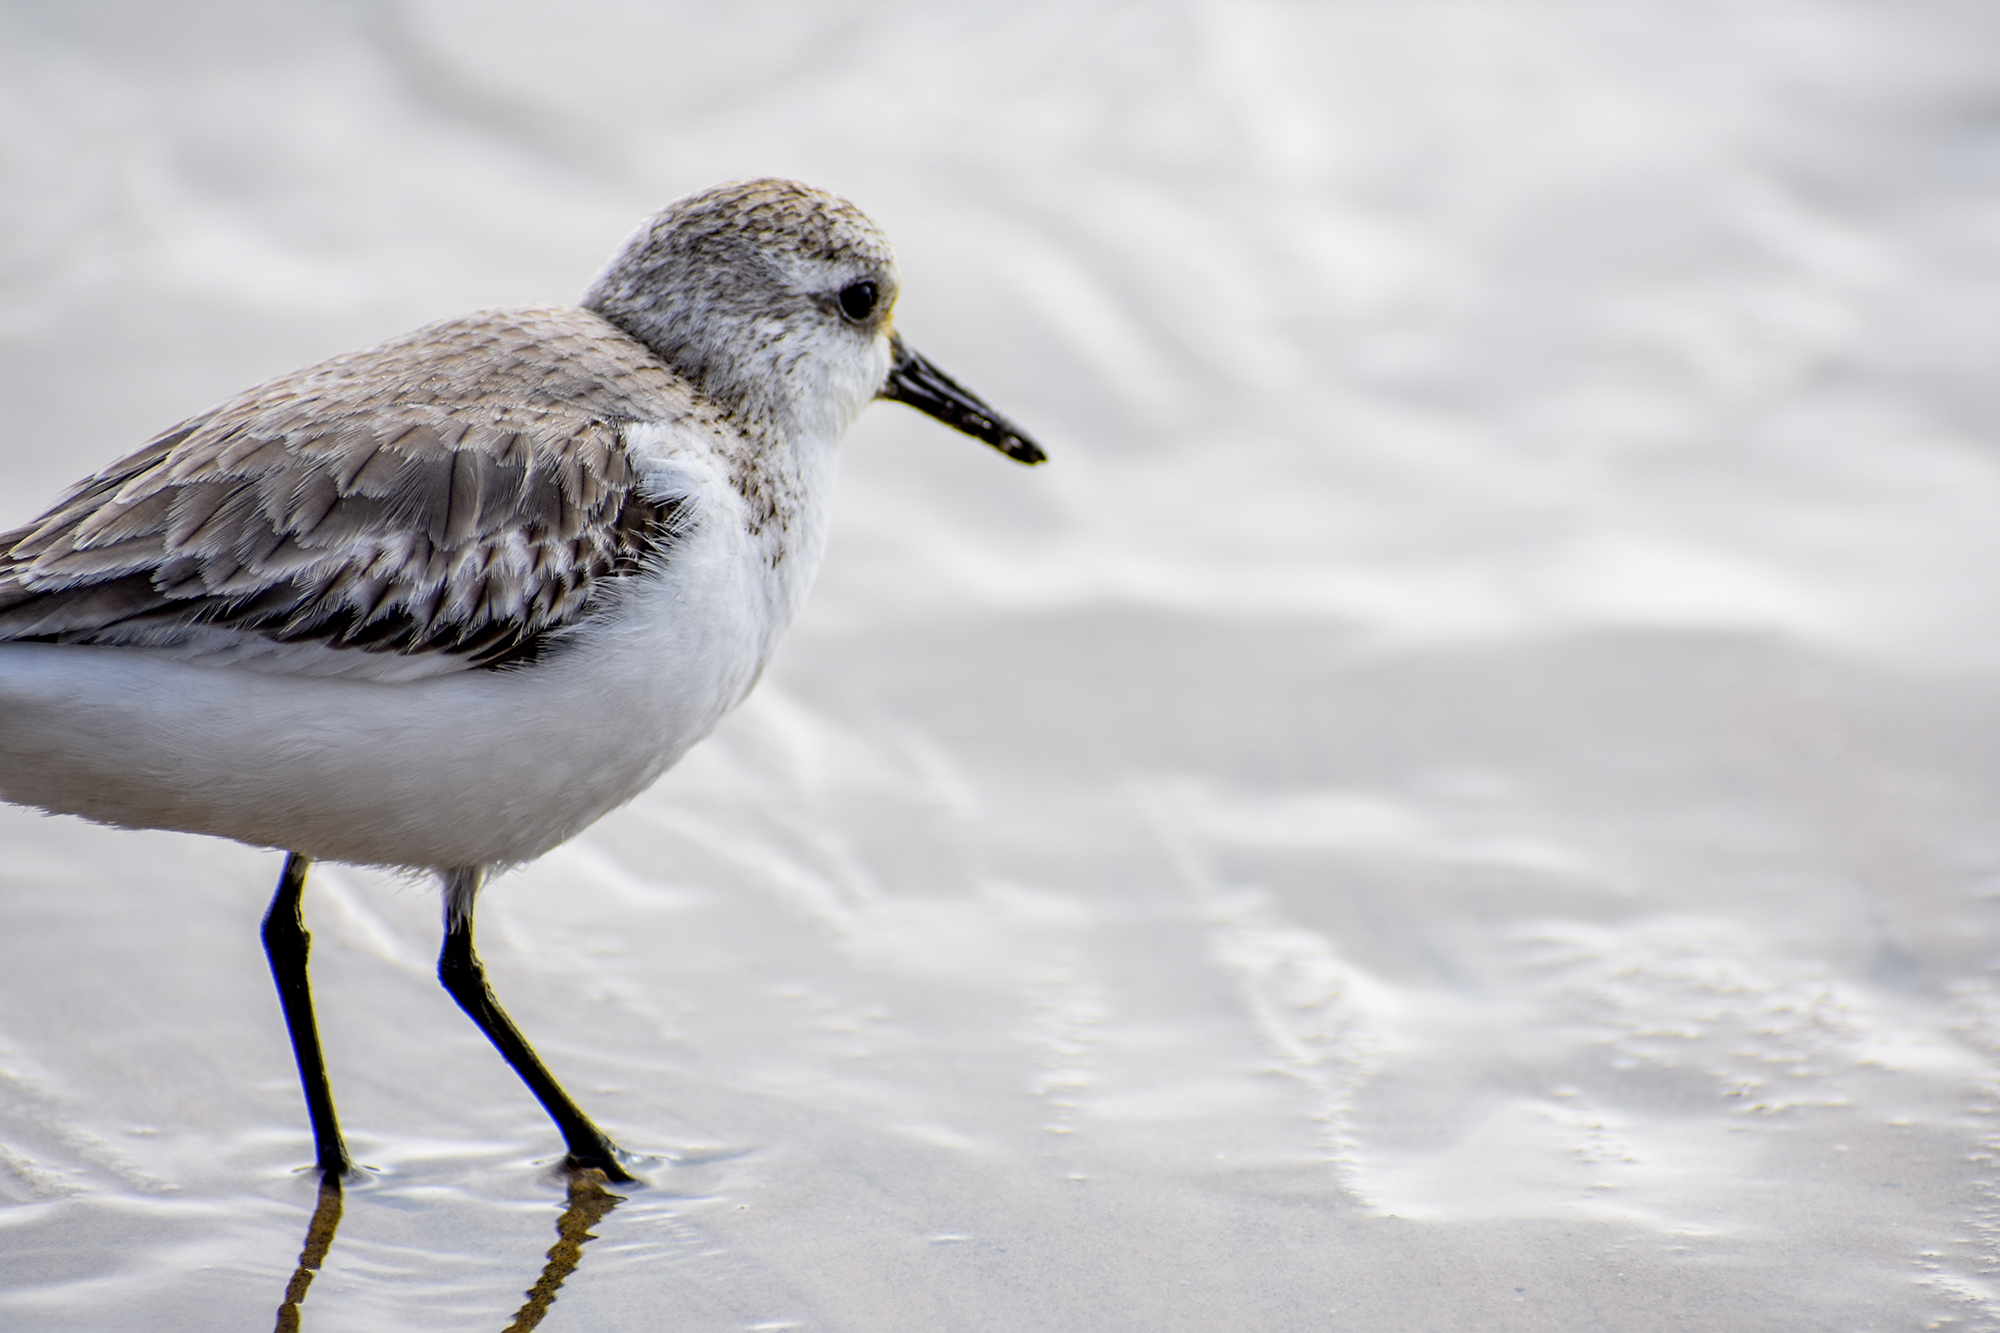 A sand piper looks out at the ocean from the shoreline.